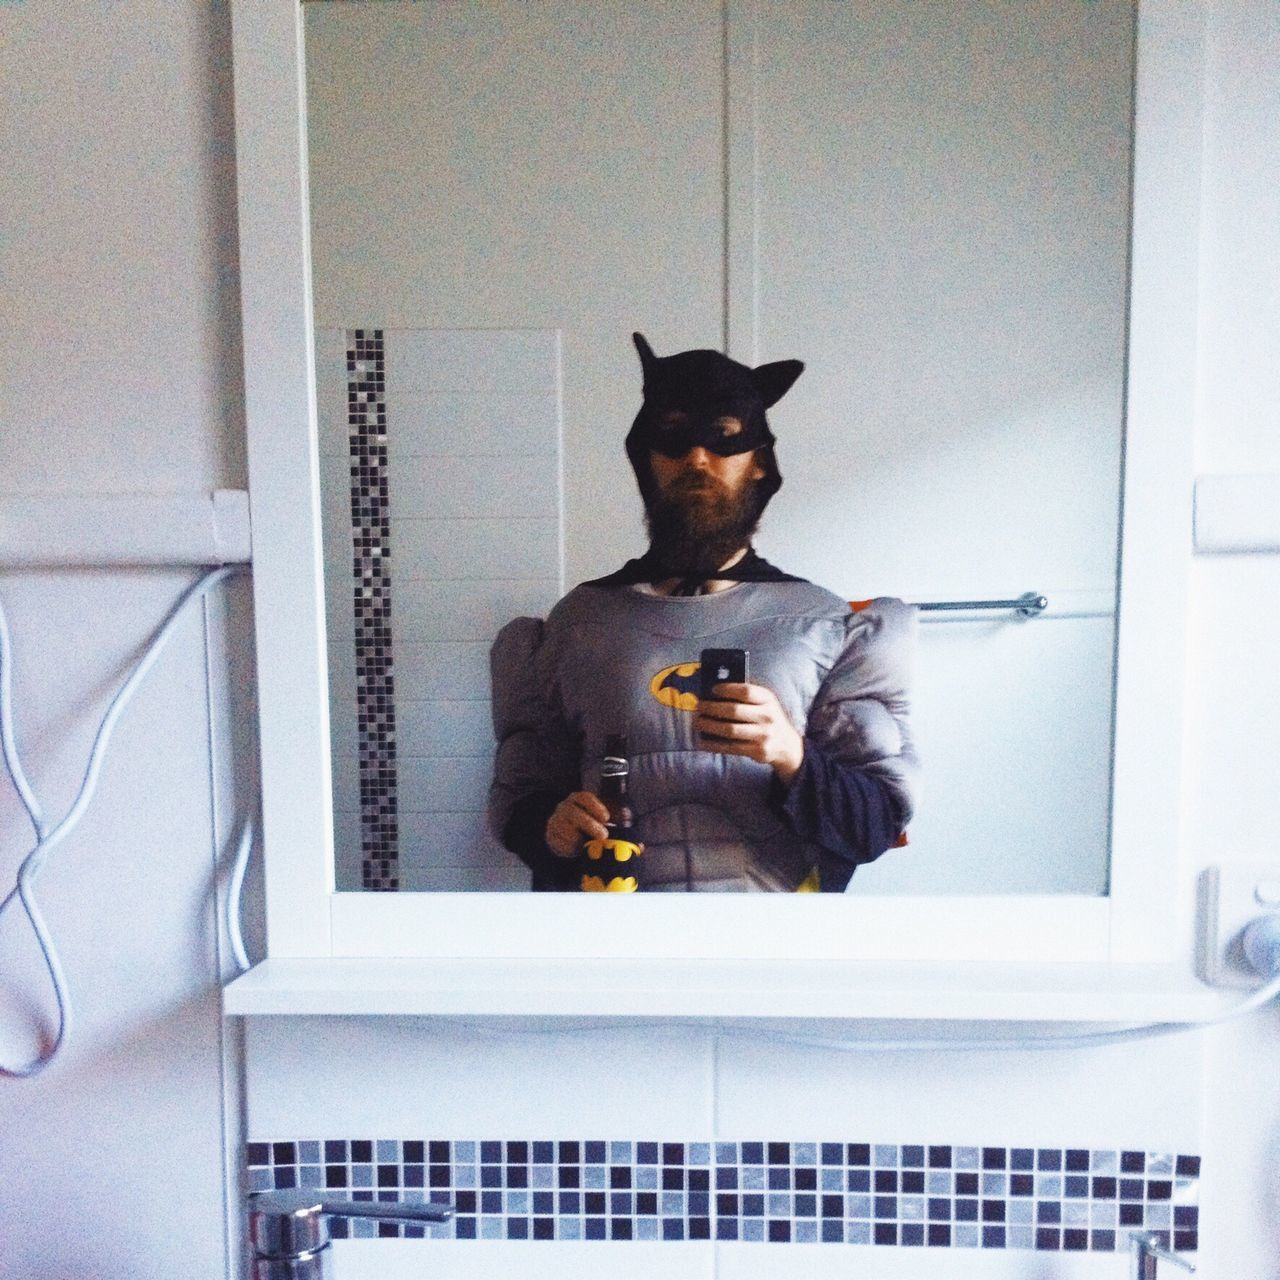 Young Adult Home Interior Indoors  Batman Selfie Bathroom Selfie Bathroom Pic Beer Funnyshit  Dressup Loser Best Dressed One Man Only HERO Superhero Drinking Party Beard Hipster Dressups Fancy Dress Costume Unfit Outofshape